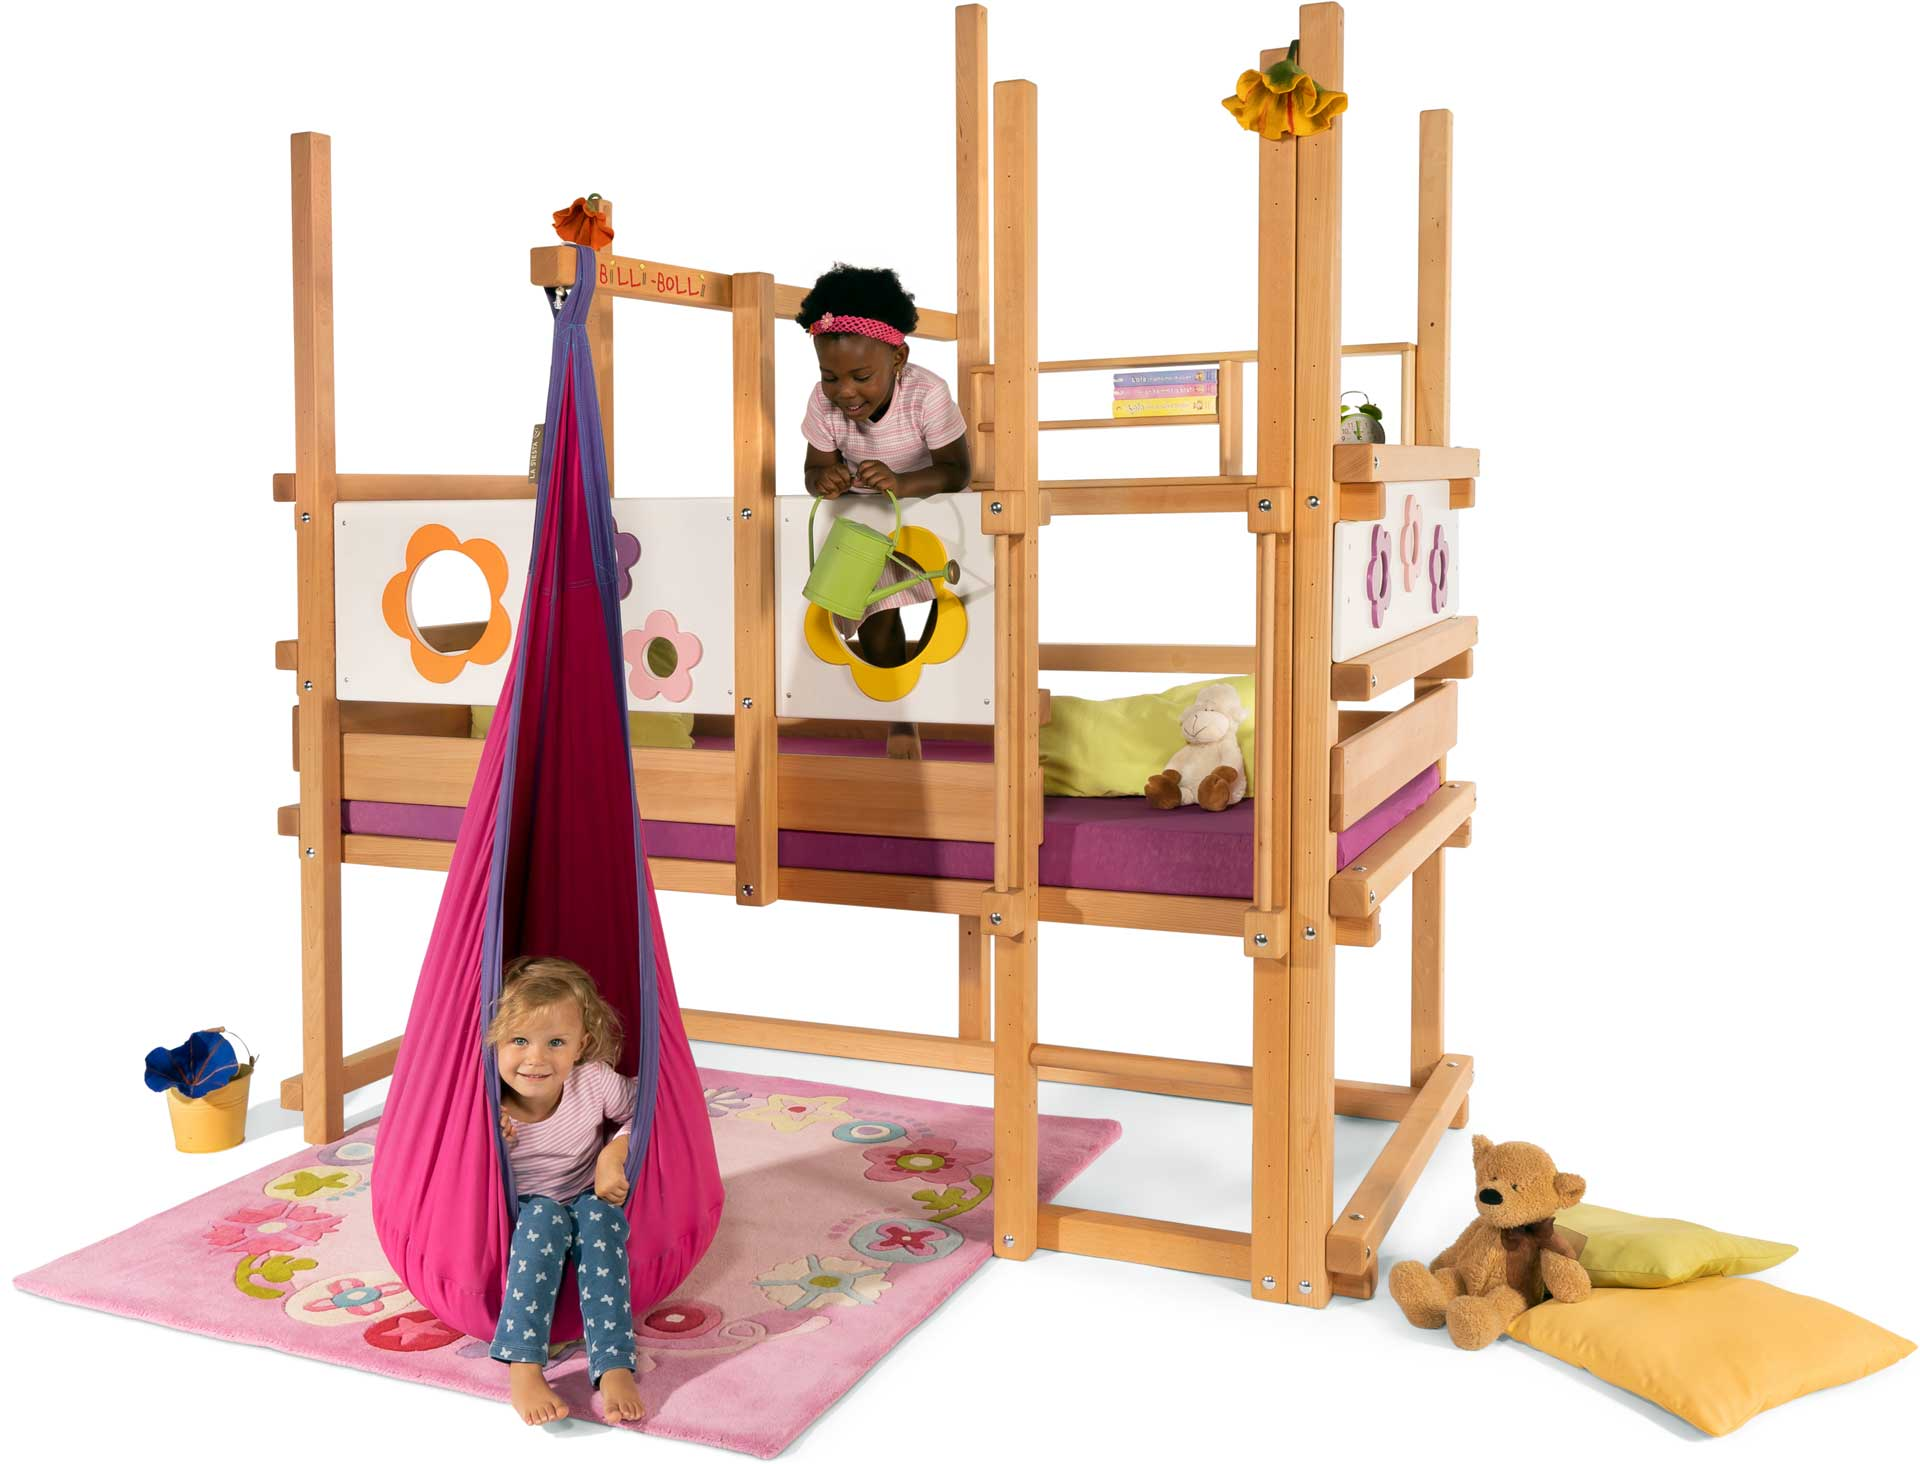 The Loft Bed Adjustable by Age in beech, assembled at height 3. Pictured with Flower Theme Boards, swing beam, Hanging Cave, Small Bed Shelf and mattress Nele Plus.